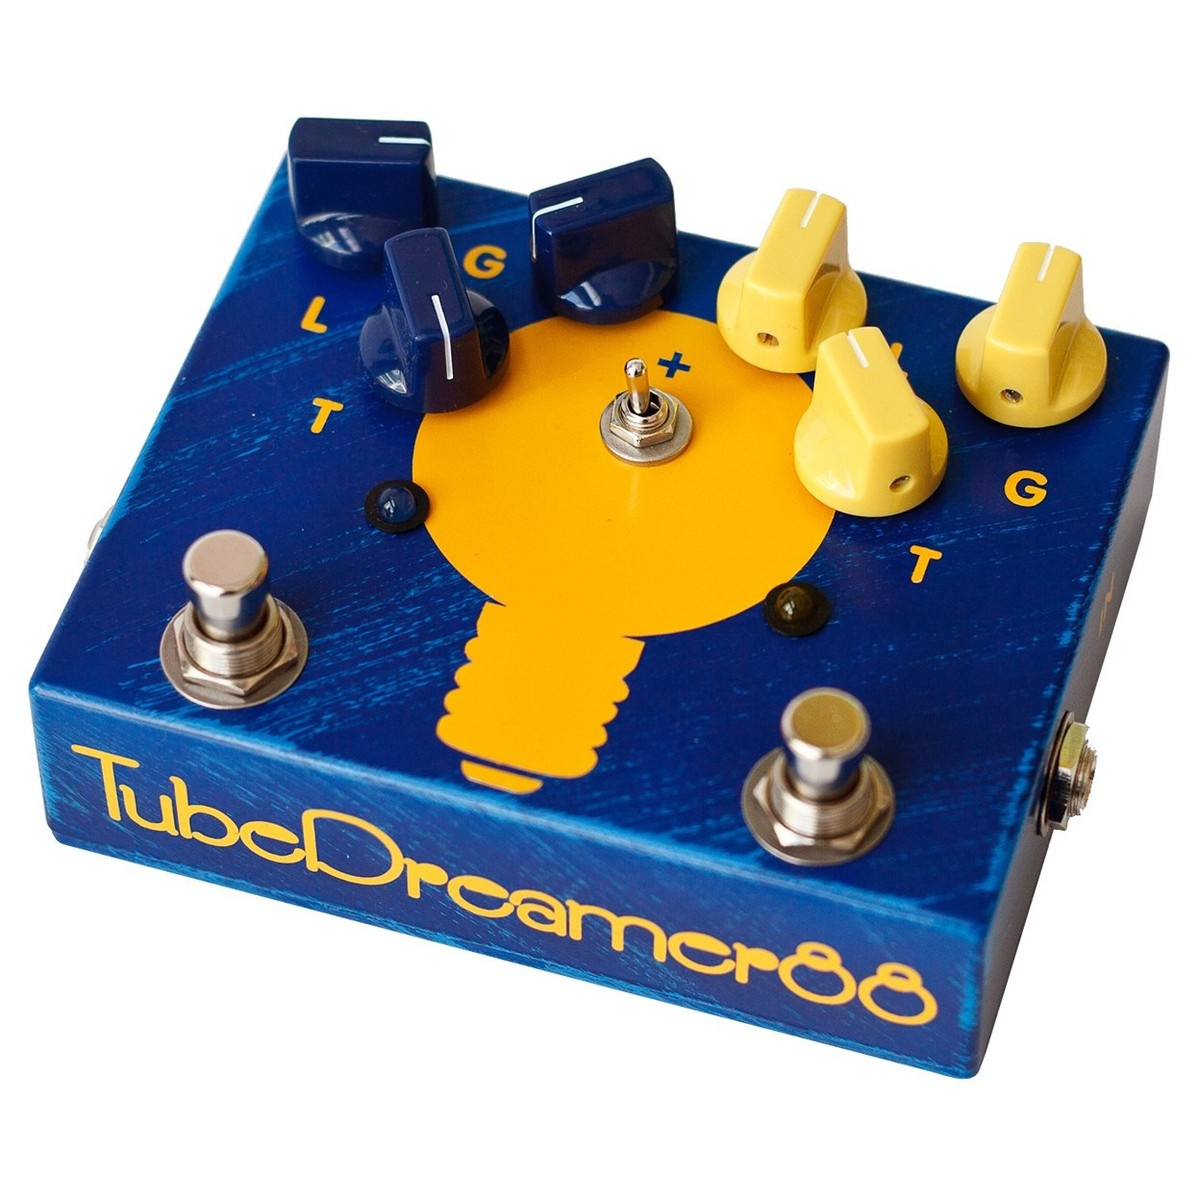 JAM Pedals TubeDreamer88 Overdrive Pedal at Gear4music.com